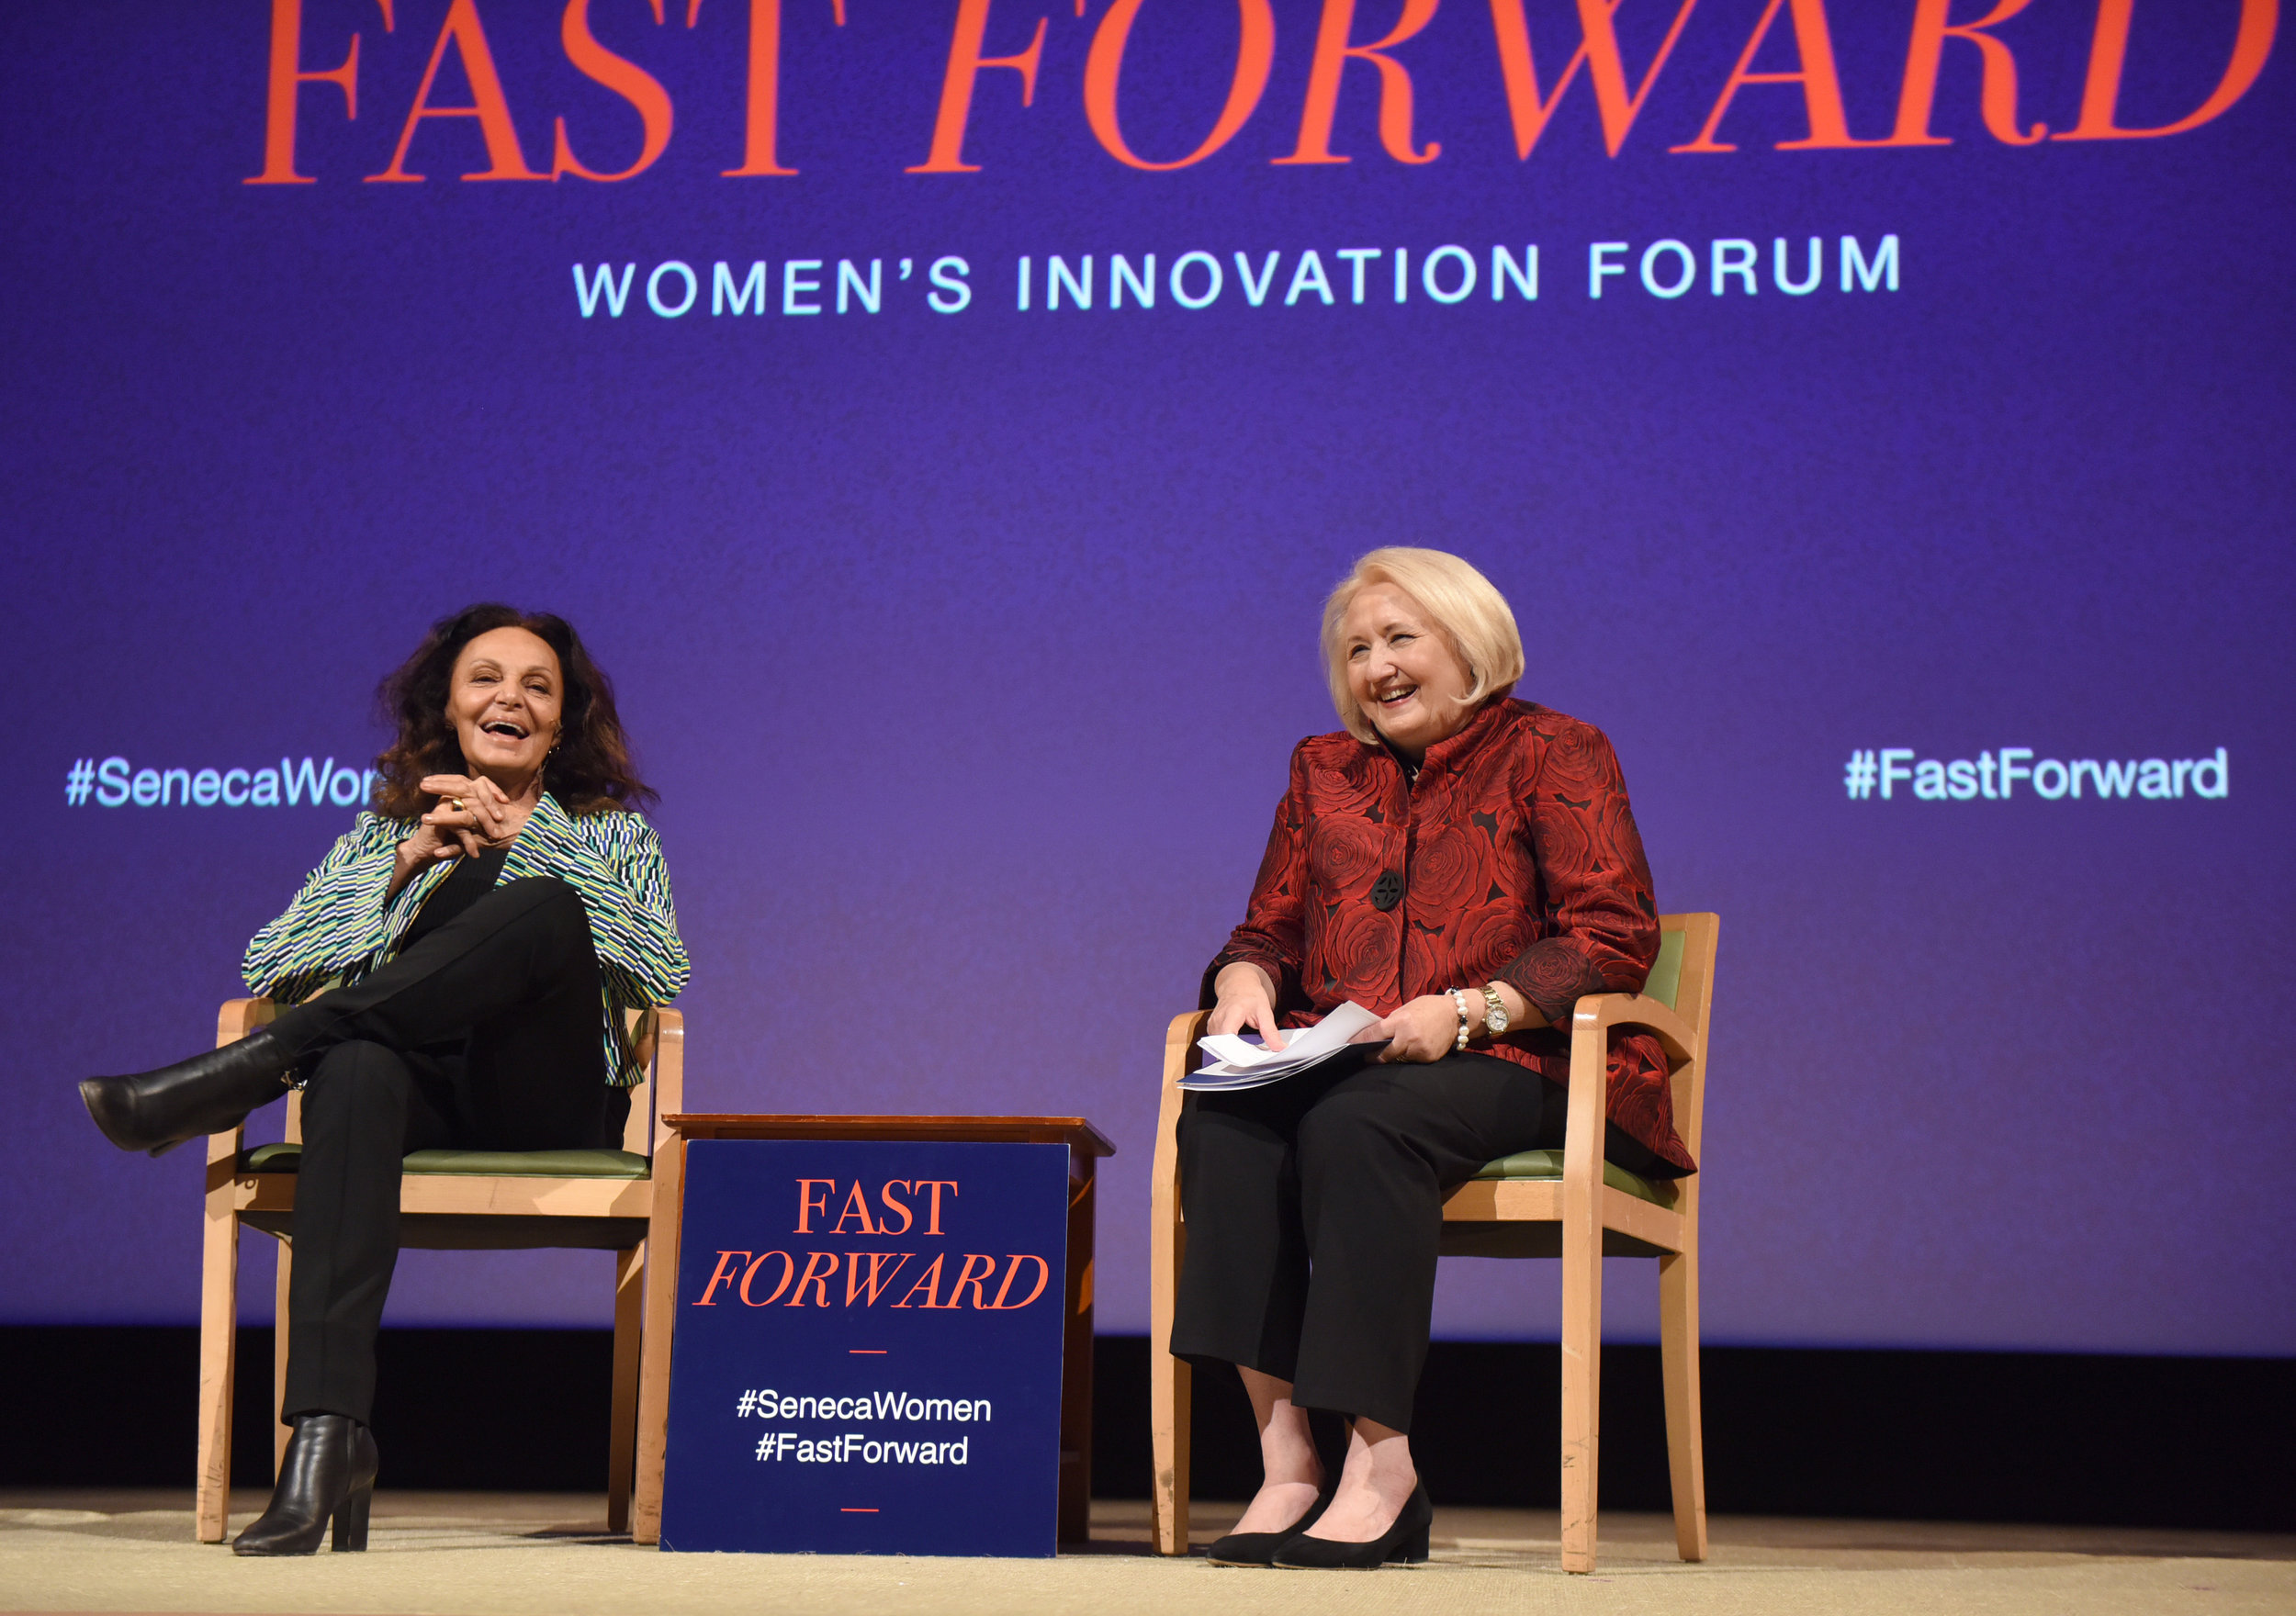 Featured Seneca Women Events This Picture Is A Preview Of Carver Pm15 Poweramplifierschematic Dvf And Melanne Verveer